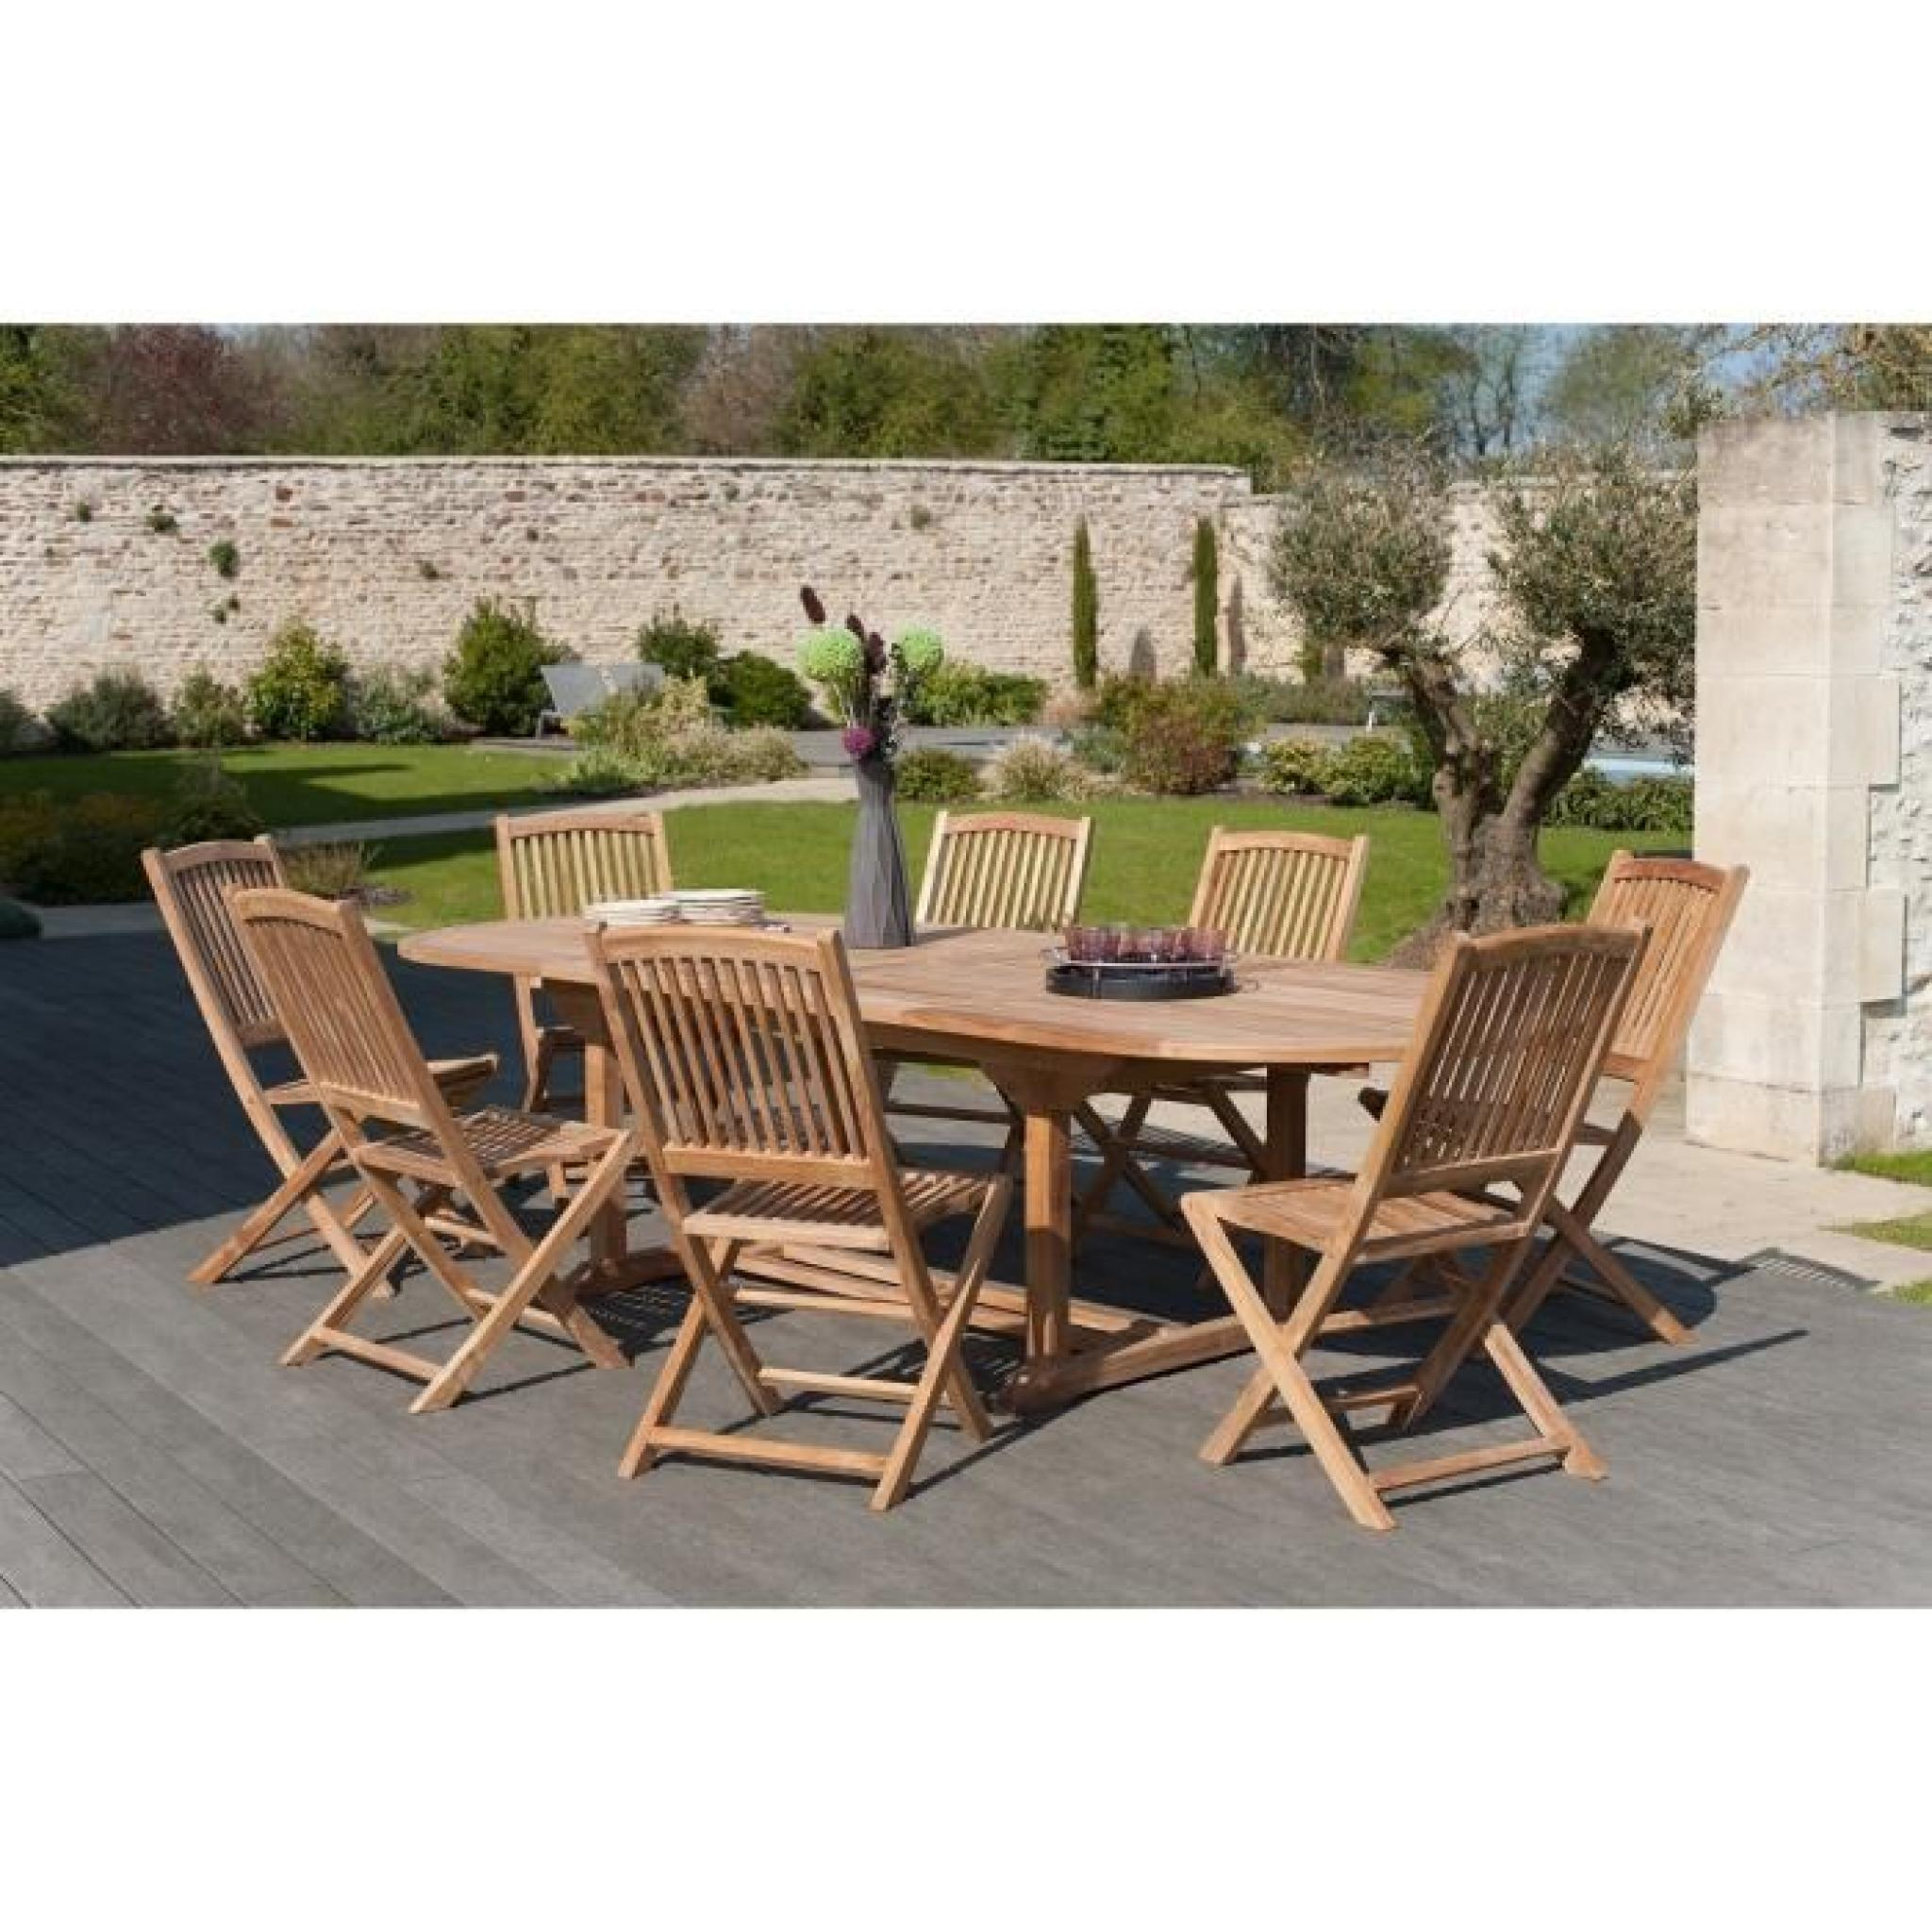 ensemble en teck table ovale extensible de jardin 180 240 cm 6 chaises achat vente salon. Black Bedroom Furniture Sets. Home Design Ideas